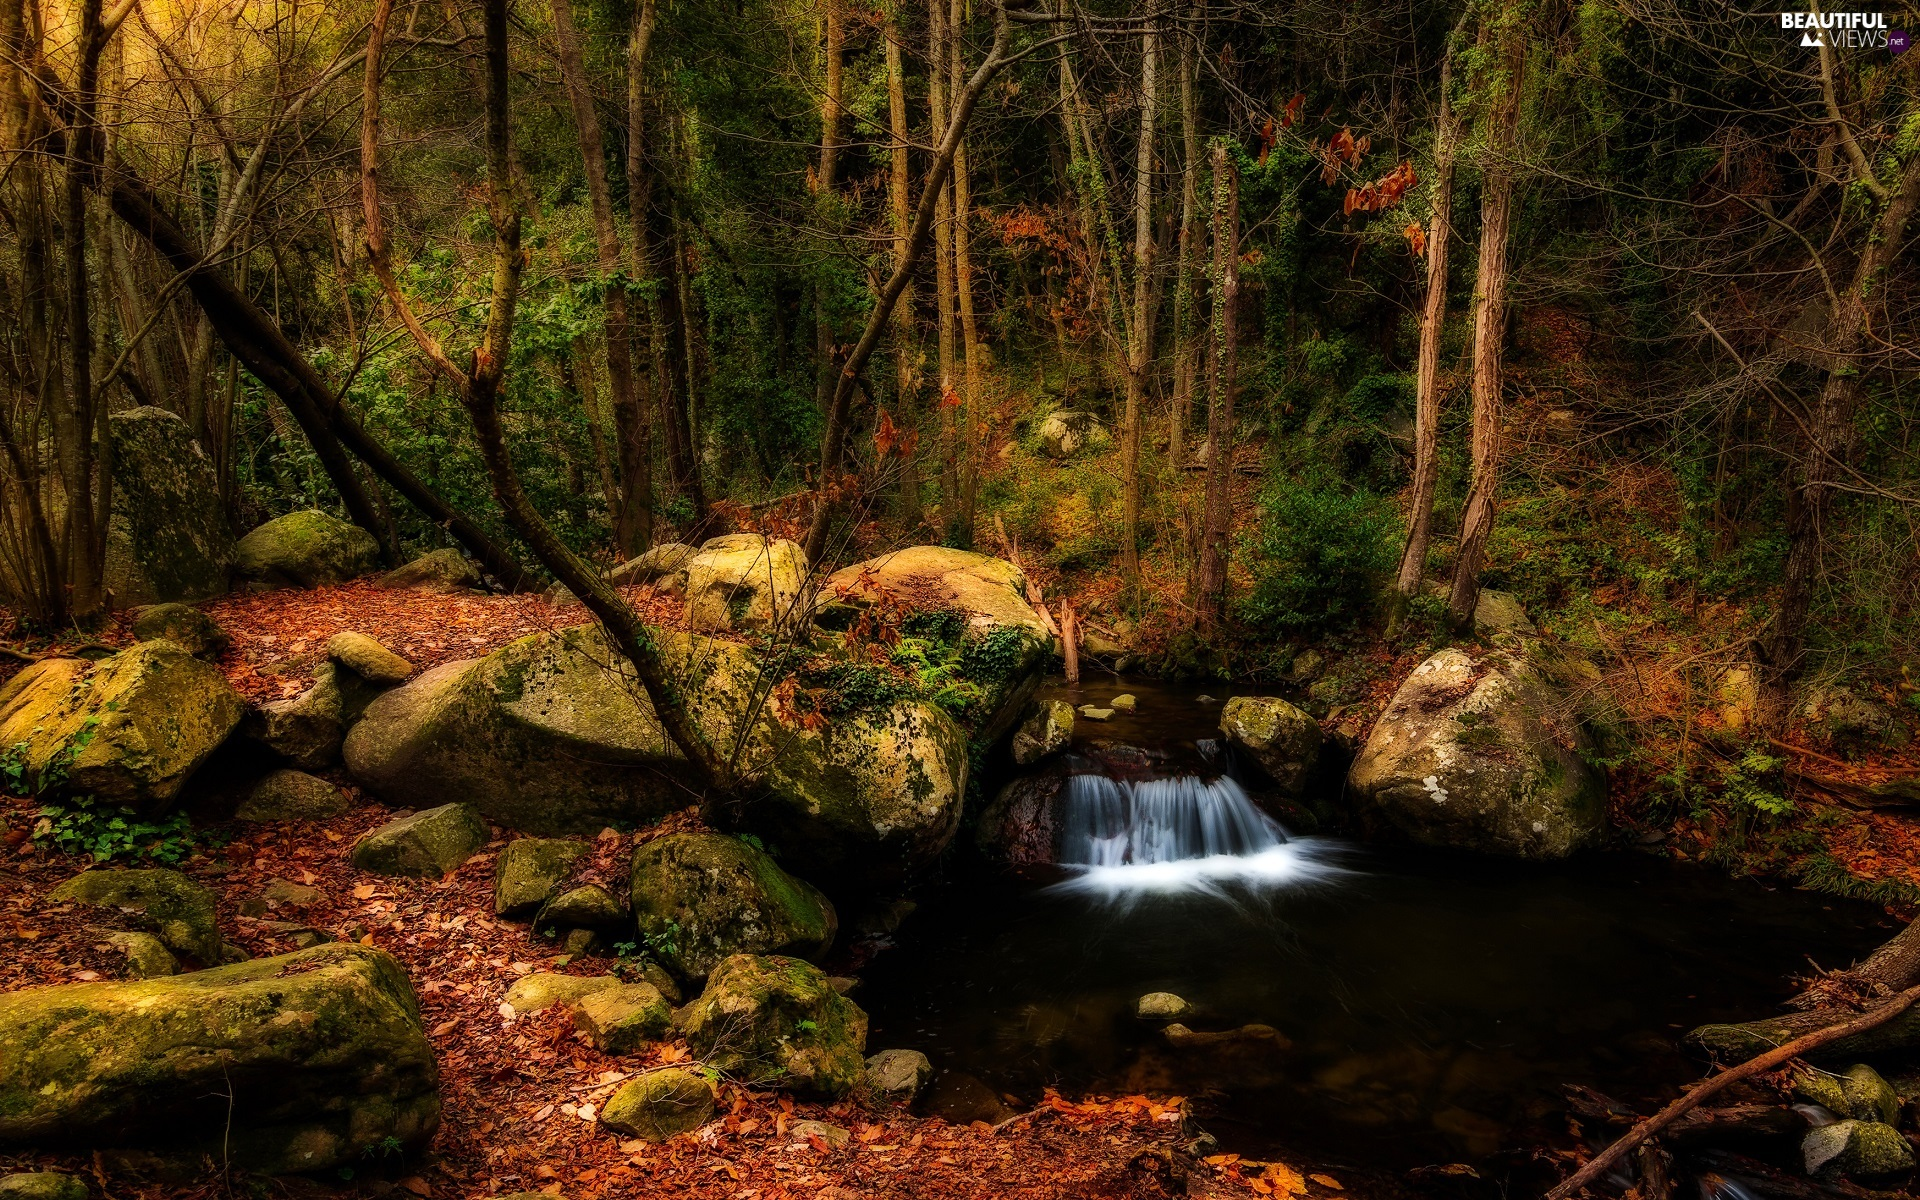 River, trees, fallen, viewes, forest, Stones, Leaf